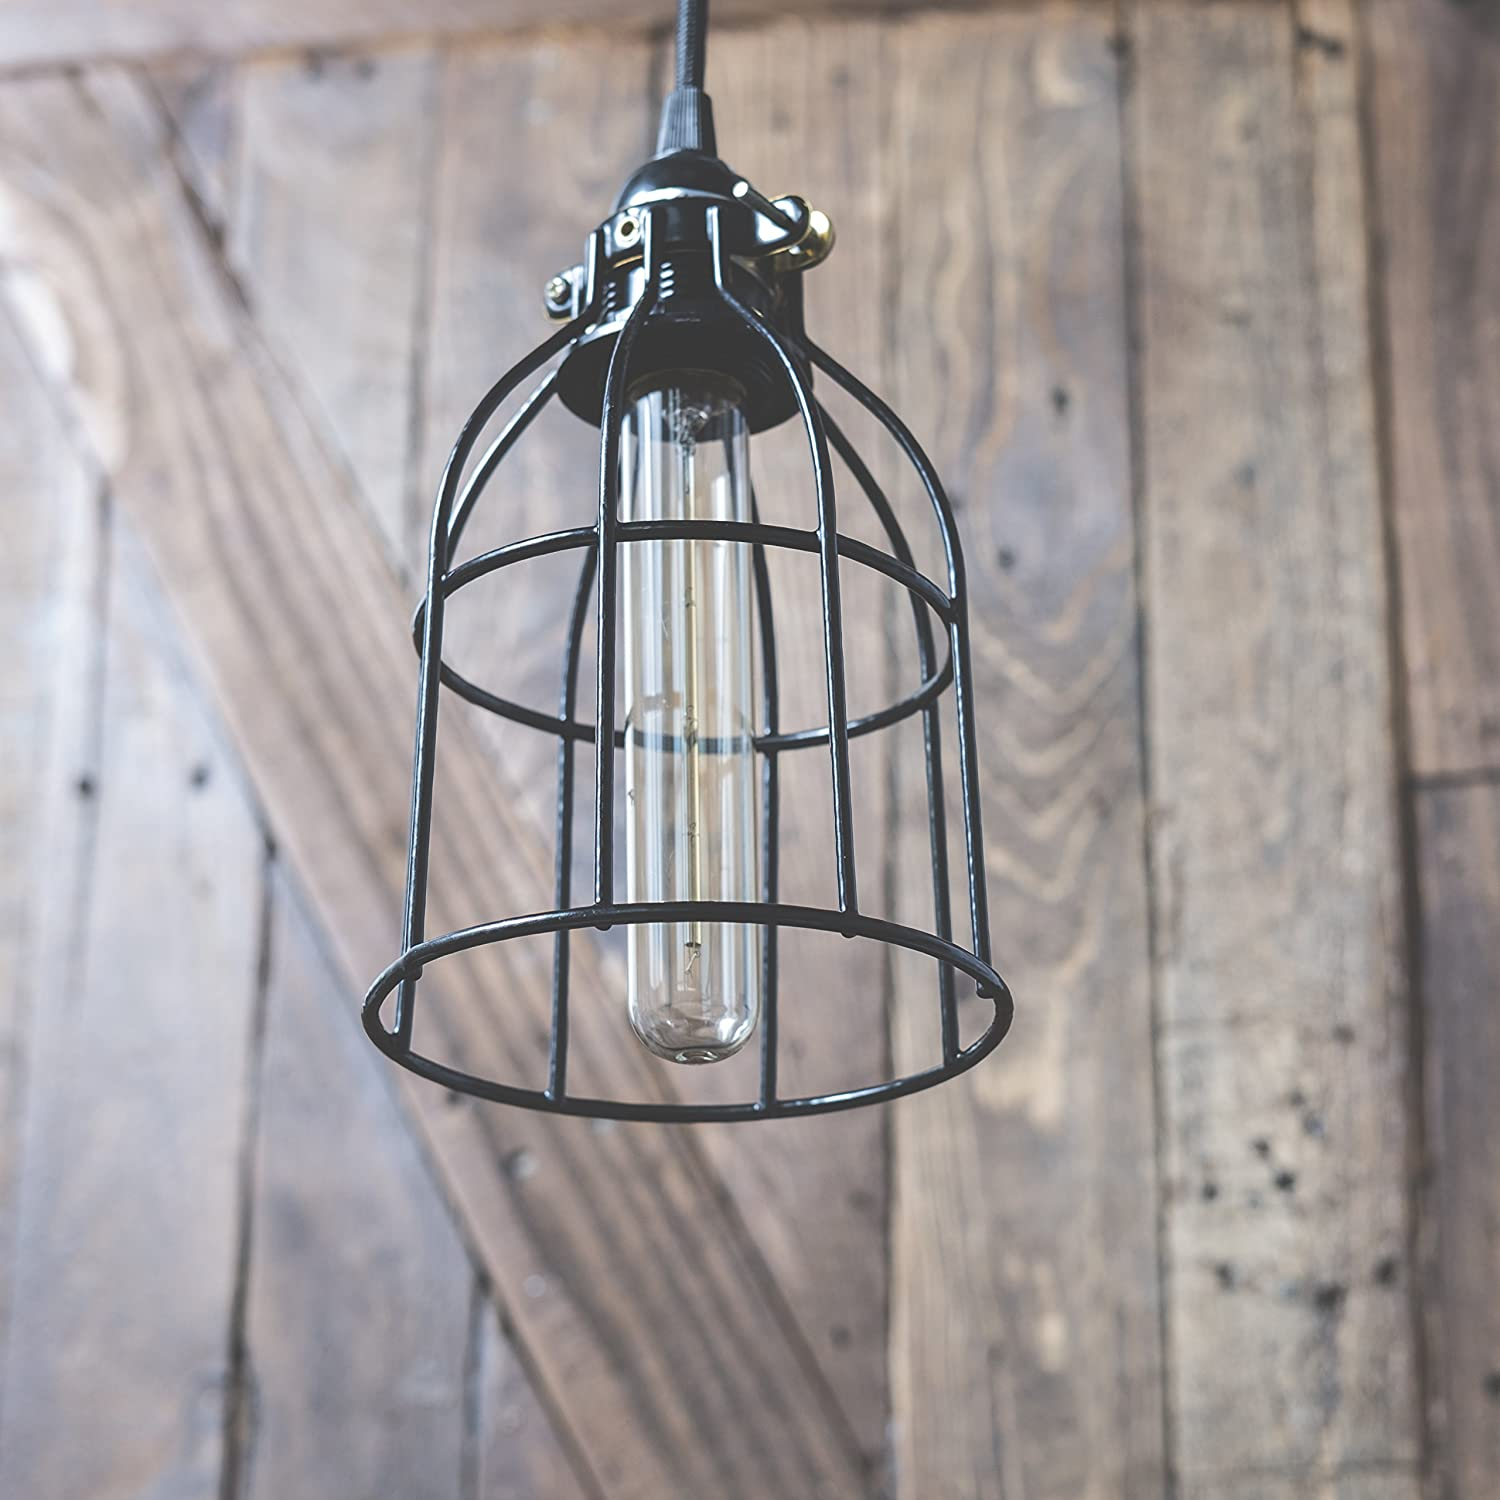 Industrial Vintage Style Metal Wire Curved Cage Pendant Ceiling Lamp Wiring A Lighting Fixture Light Set With 15 Toggle Switch Black Plug In Cord And Edison Tube Bulb